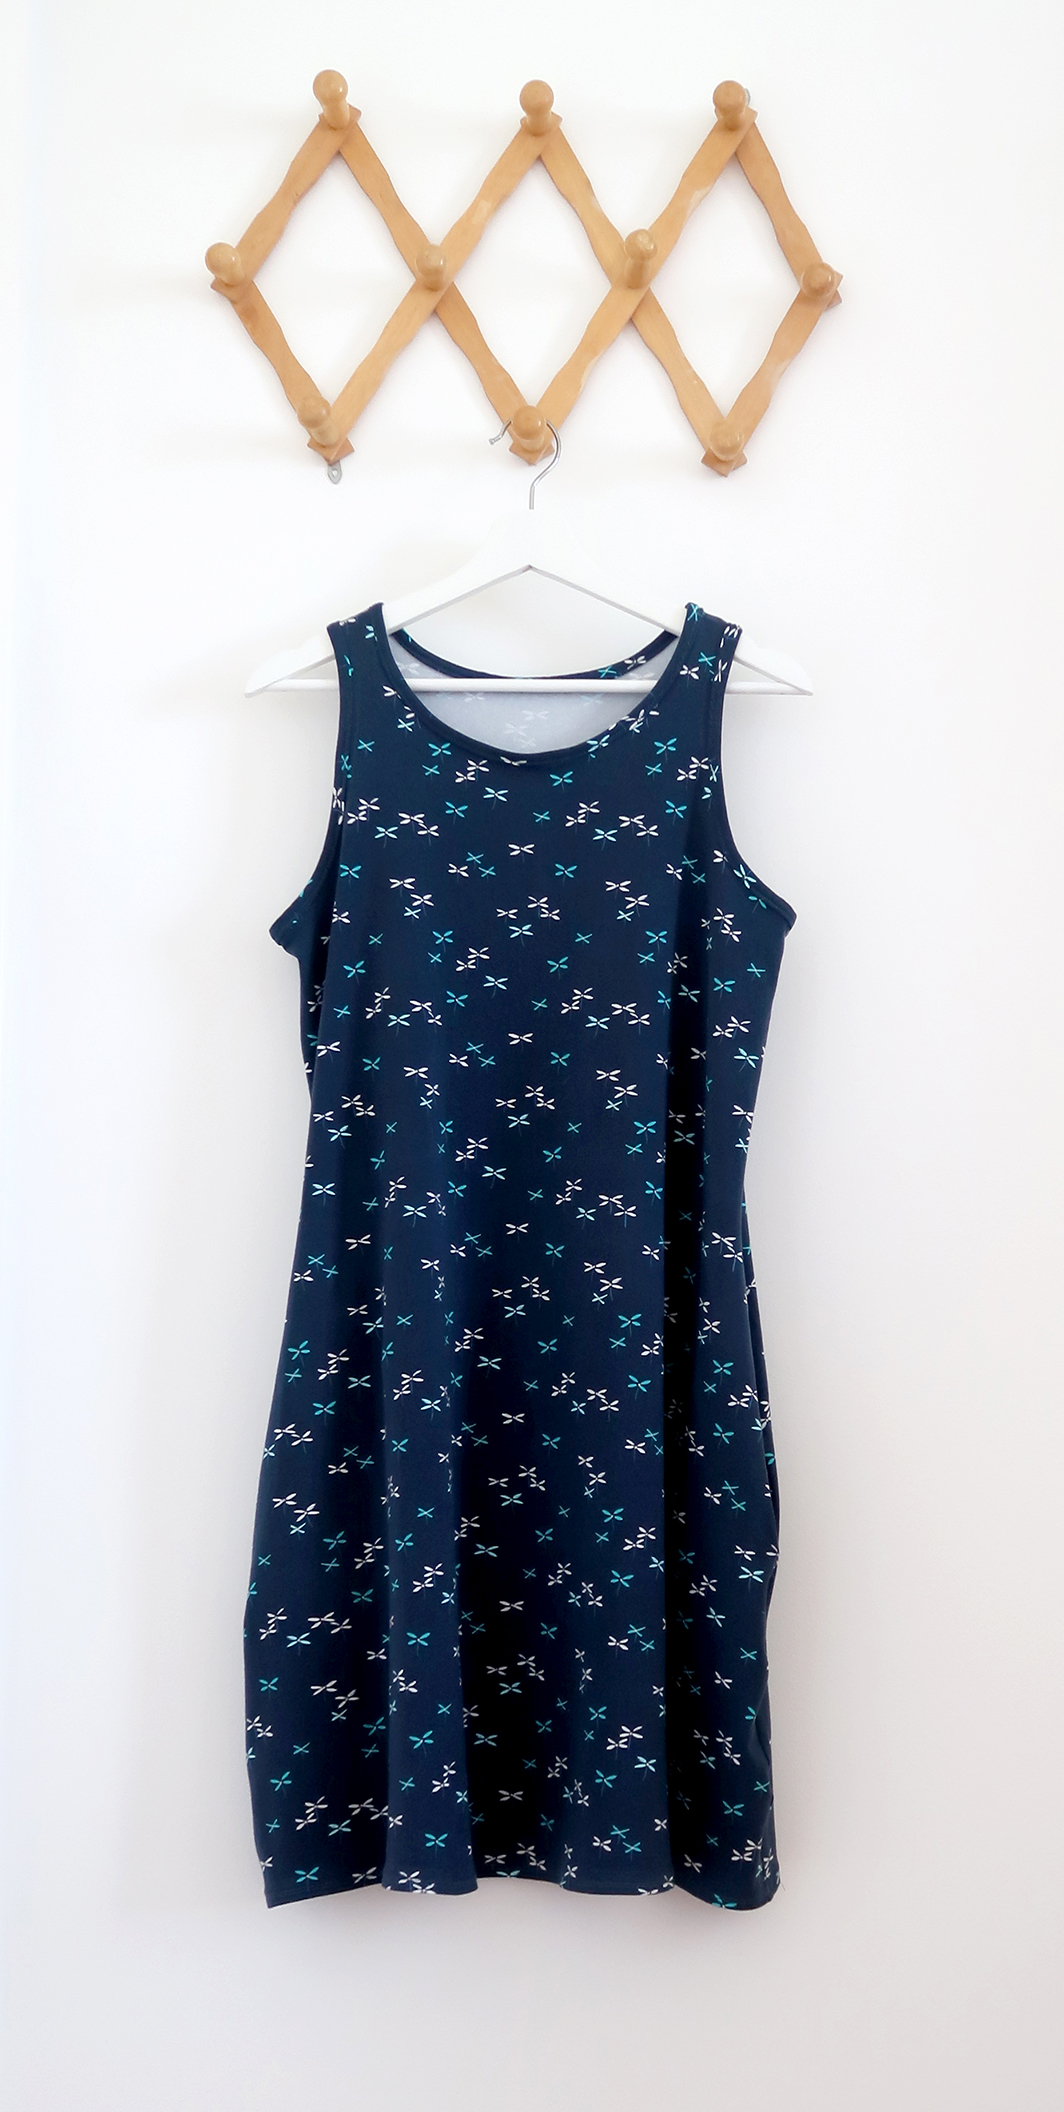 Everlasting Flutter Buds Knit dress.jpg